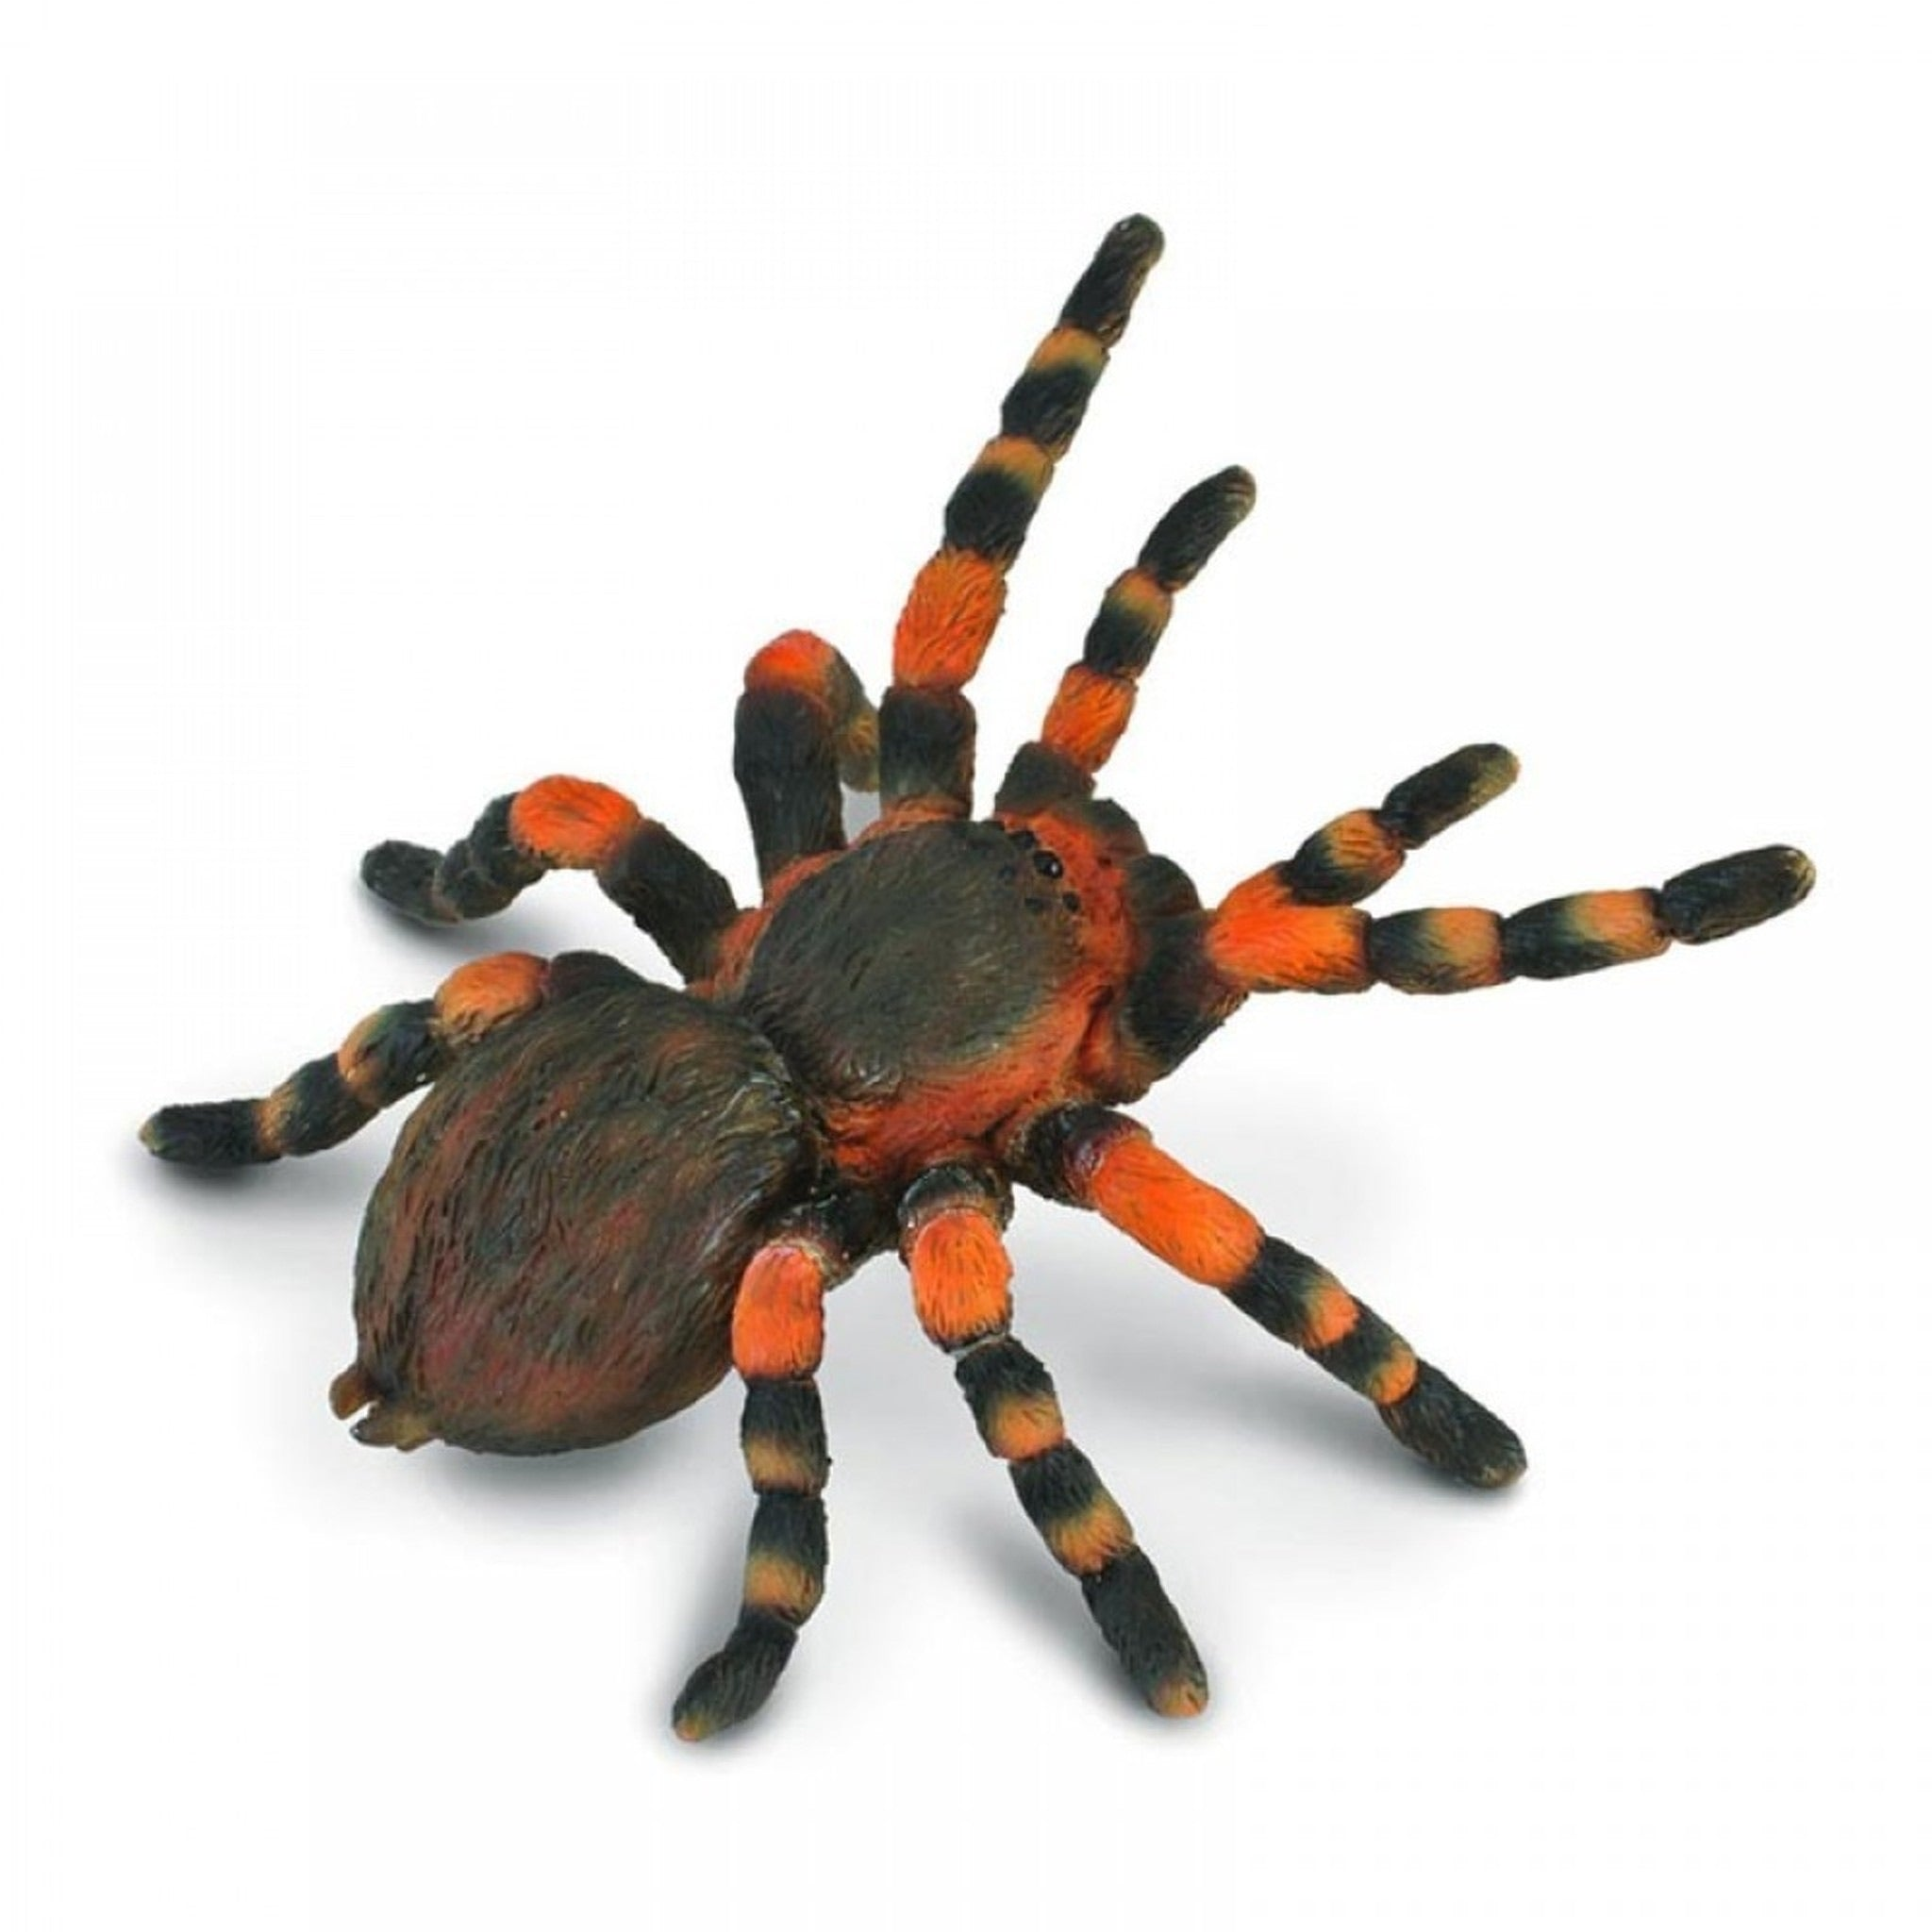 CollectA - Mexican Red Knee Tarantula